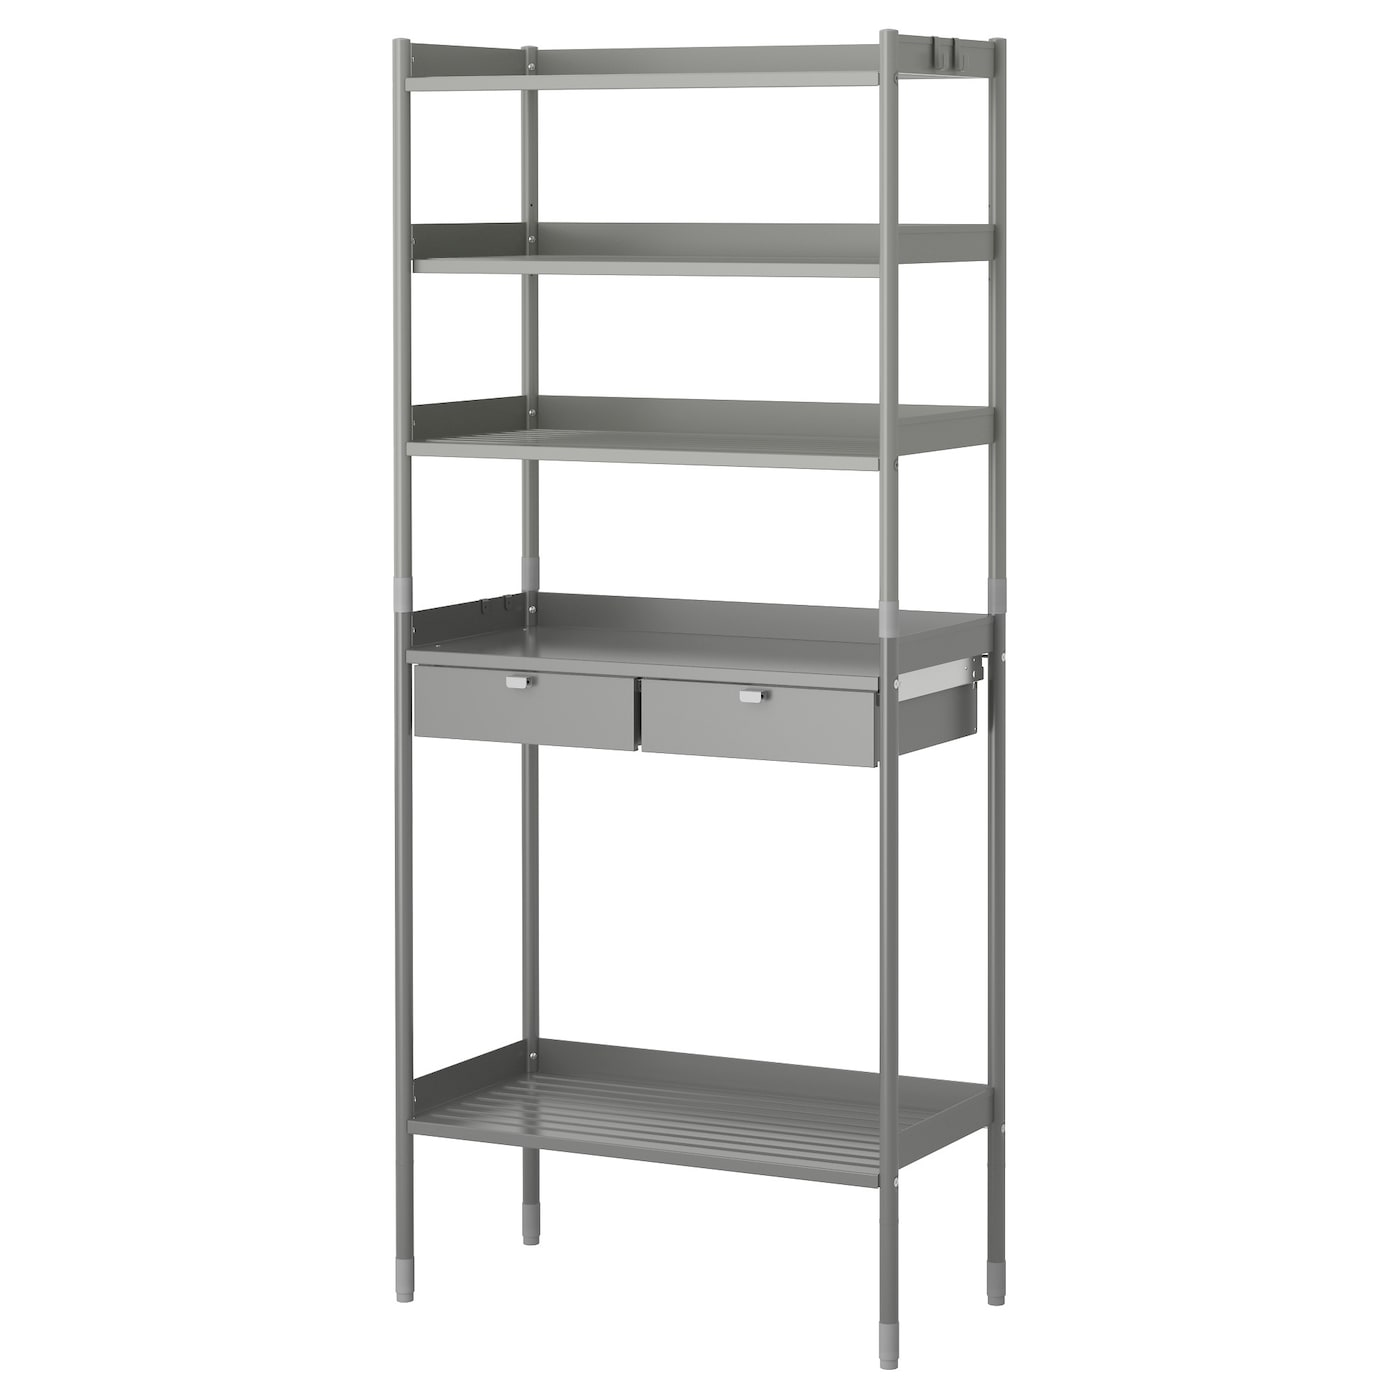 hind shelving unit in outdoor grey ikea. Black Bedroom Furniture Sets. Home Design Ideas